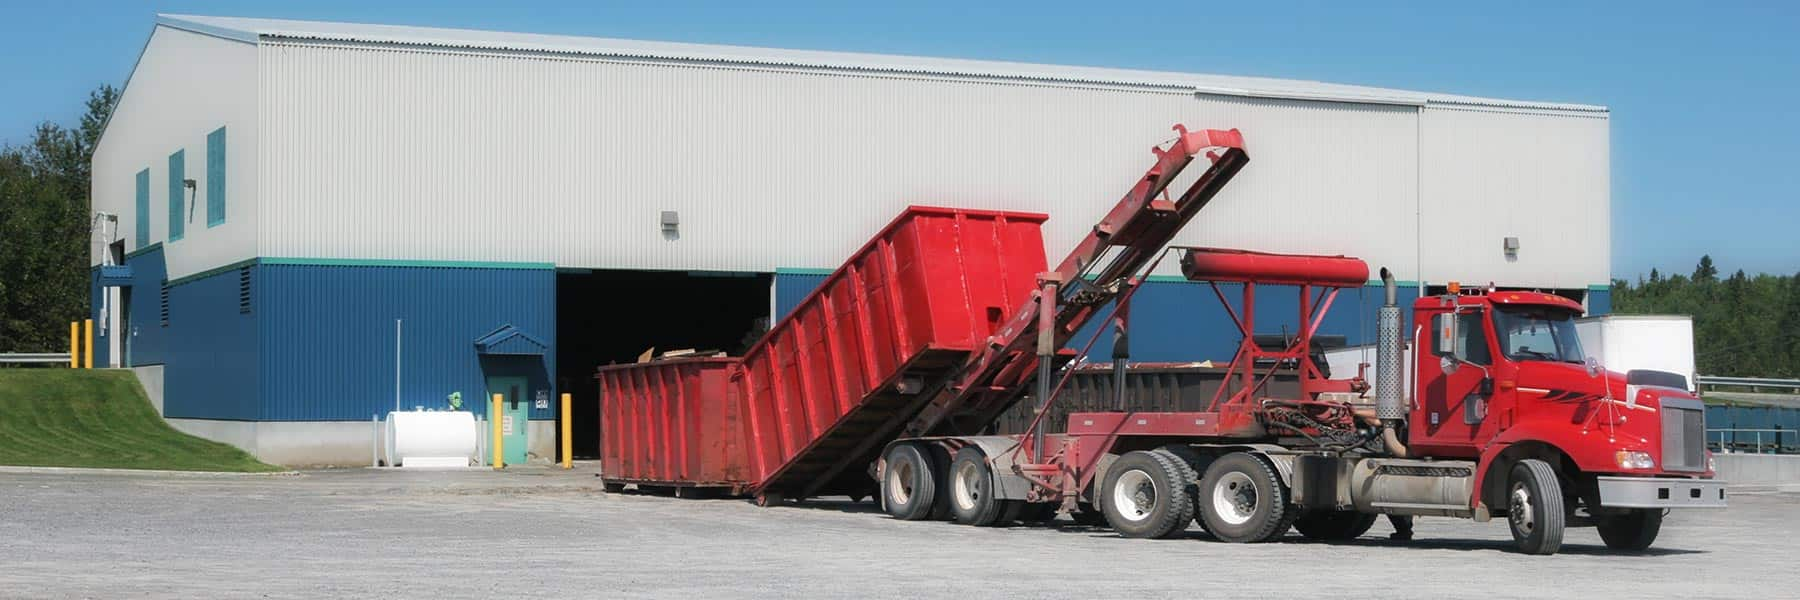 A tractor trailer unloads a delivery of large red recycling or garbage bins to a plant.